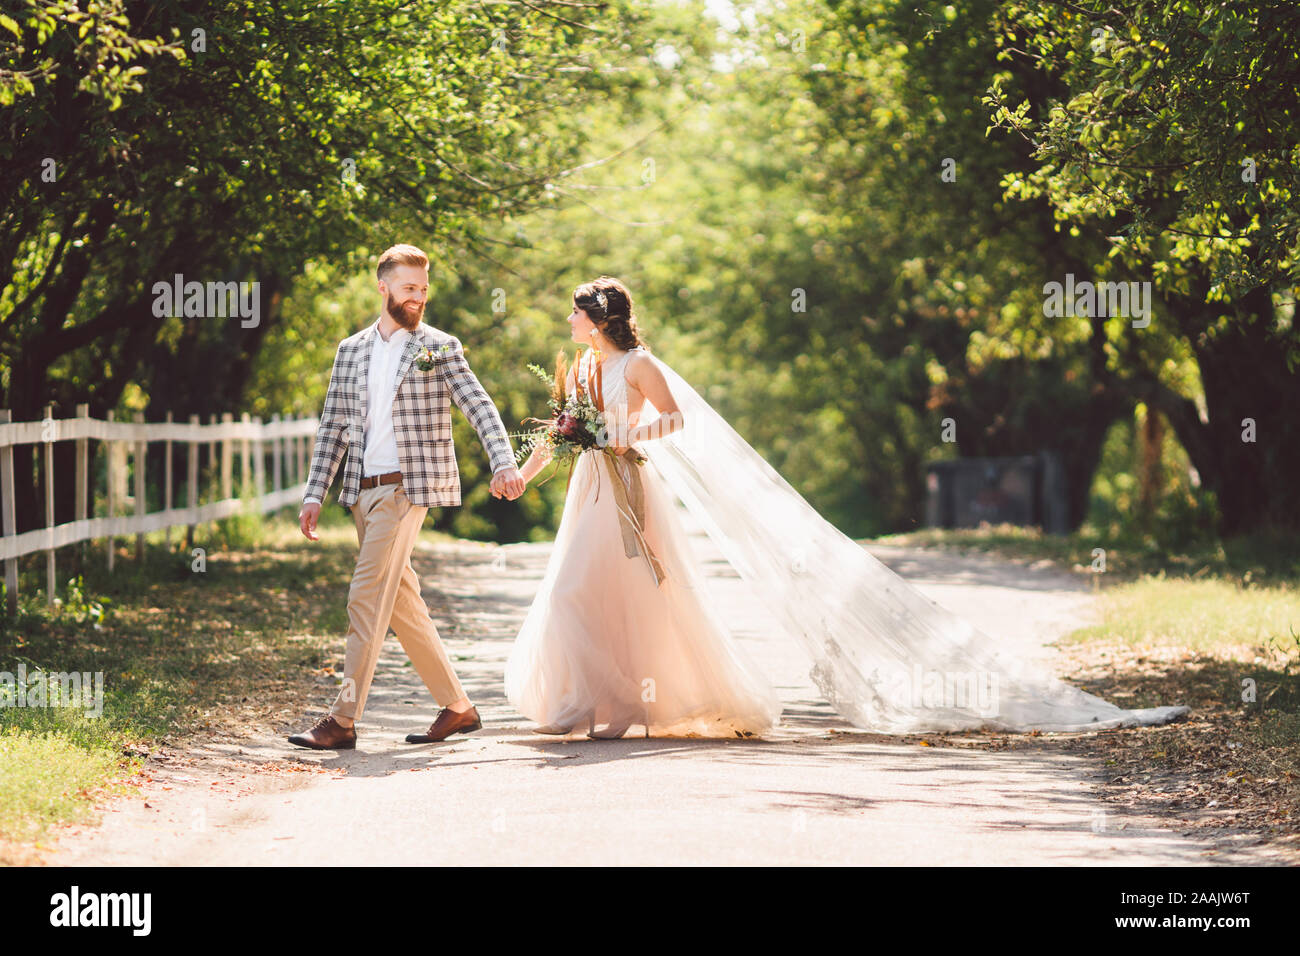 Lovely wedding couple wood forest. Bride and groom, follow me, married couple, woman in white wedding dress and veil. Rustic outdoors love story Stock Photo